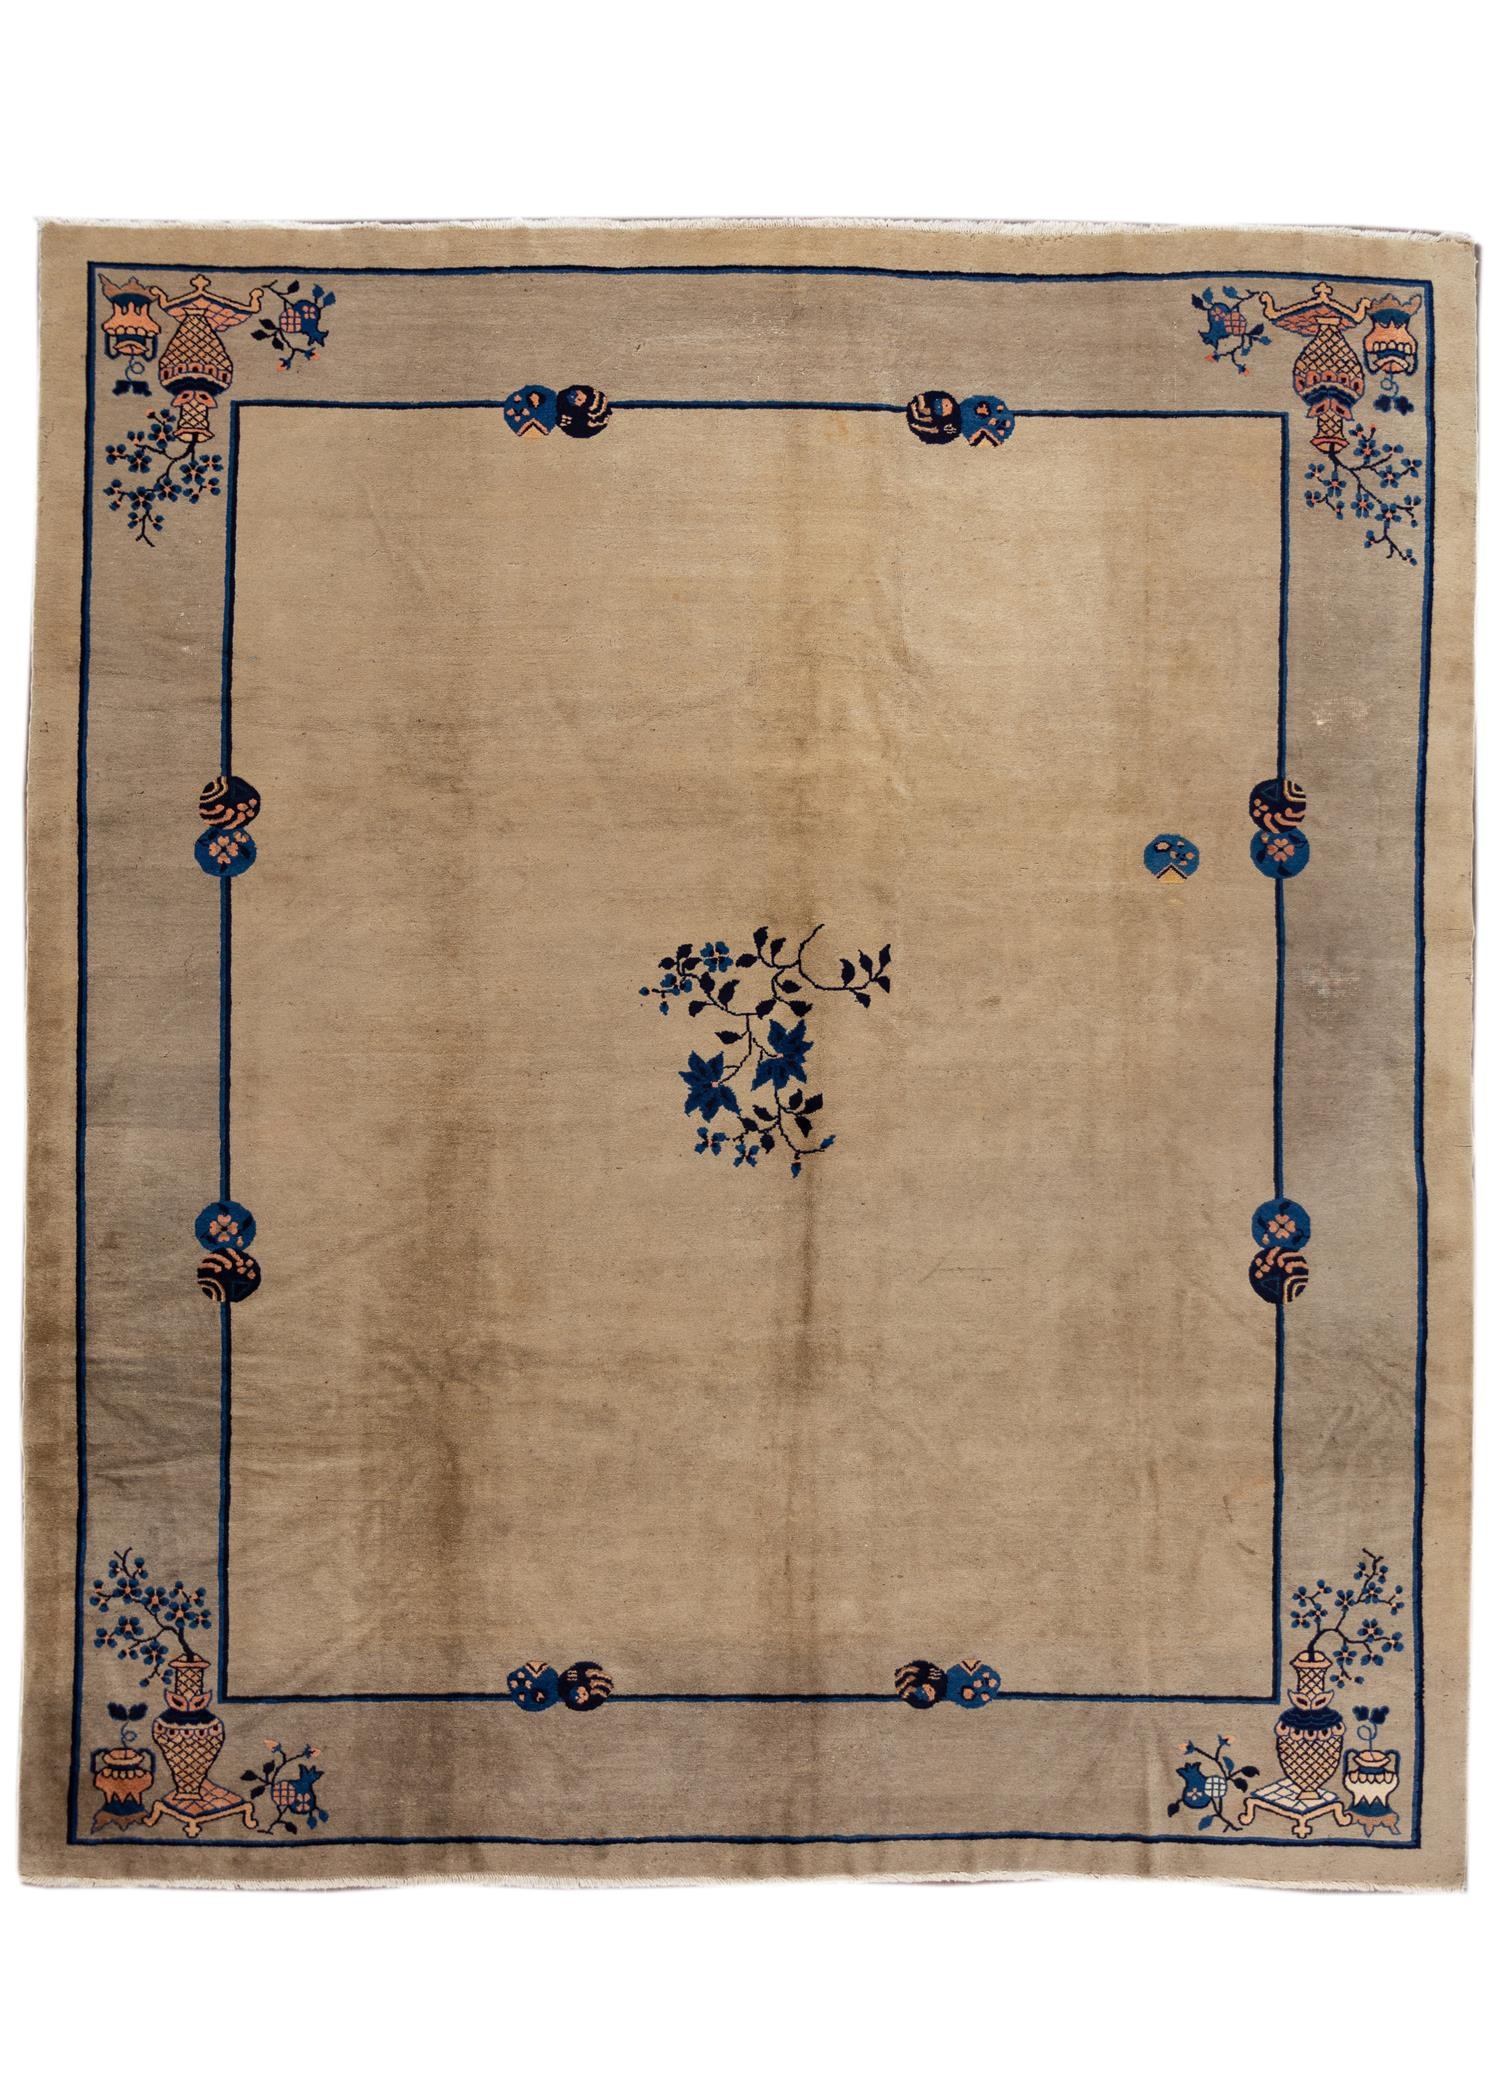 Antique Chinese Peking Rug, 10x11